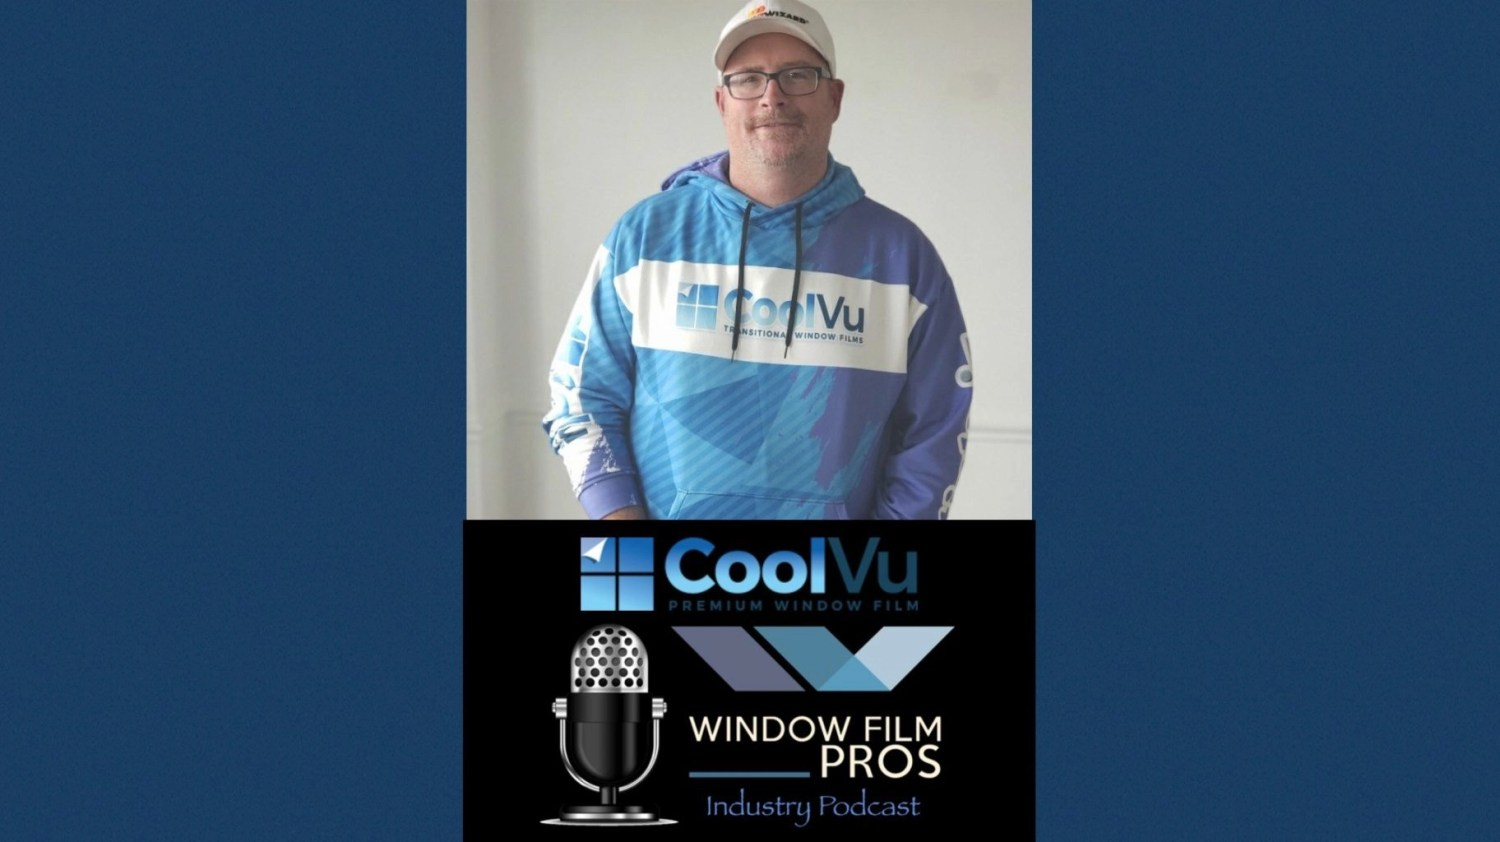 David Karle from CoolVu Window Film on the Window Film Pros Podcast